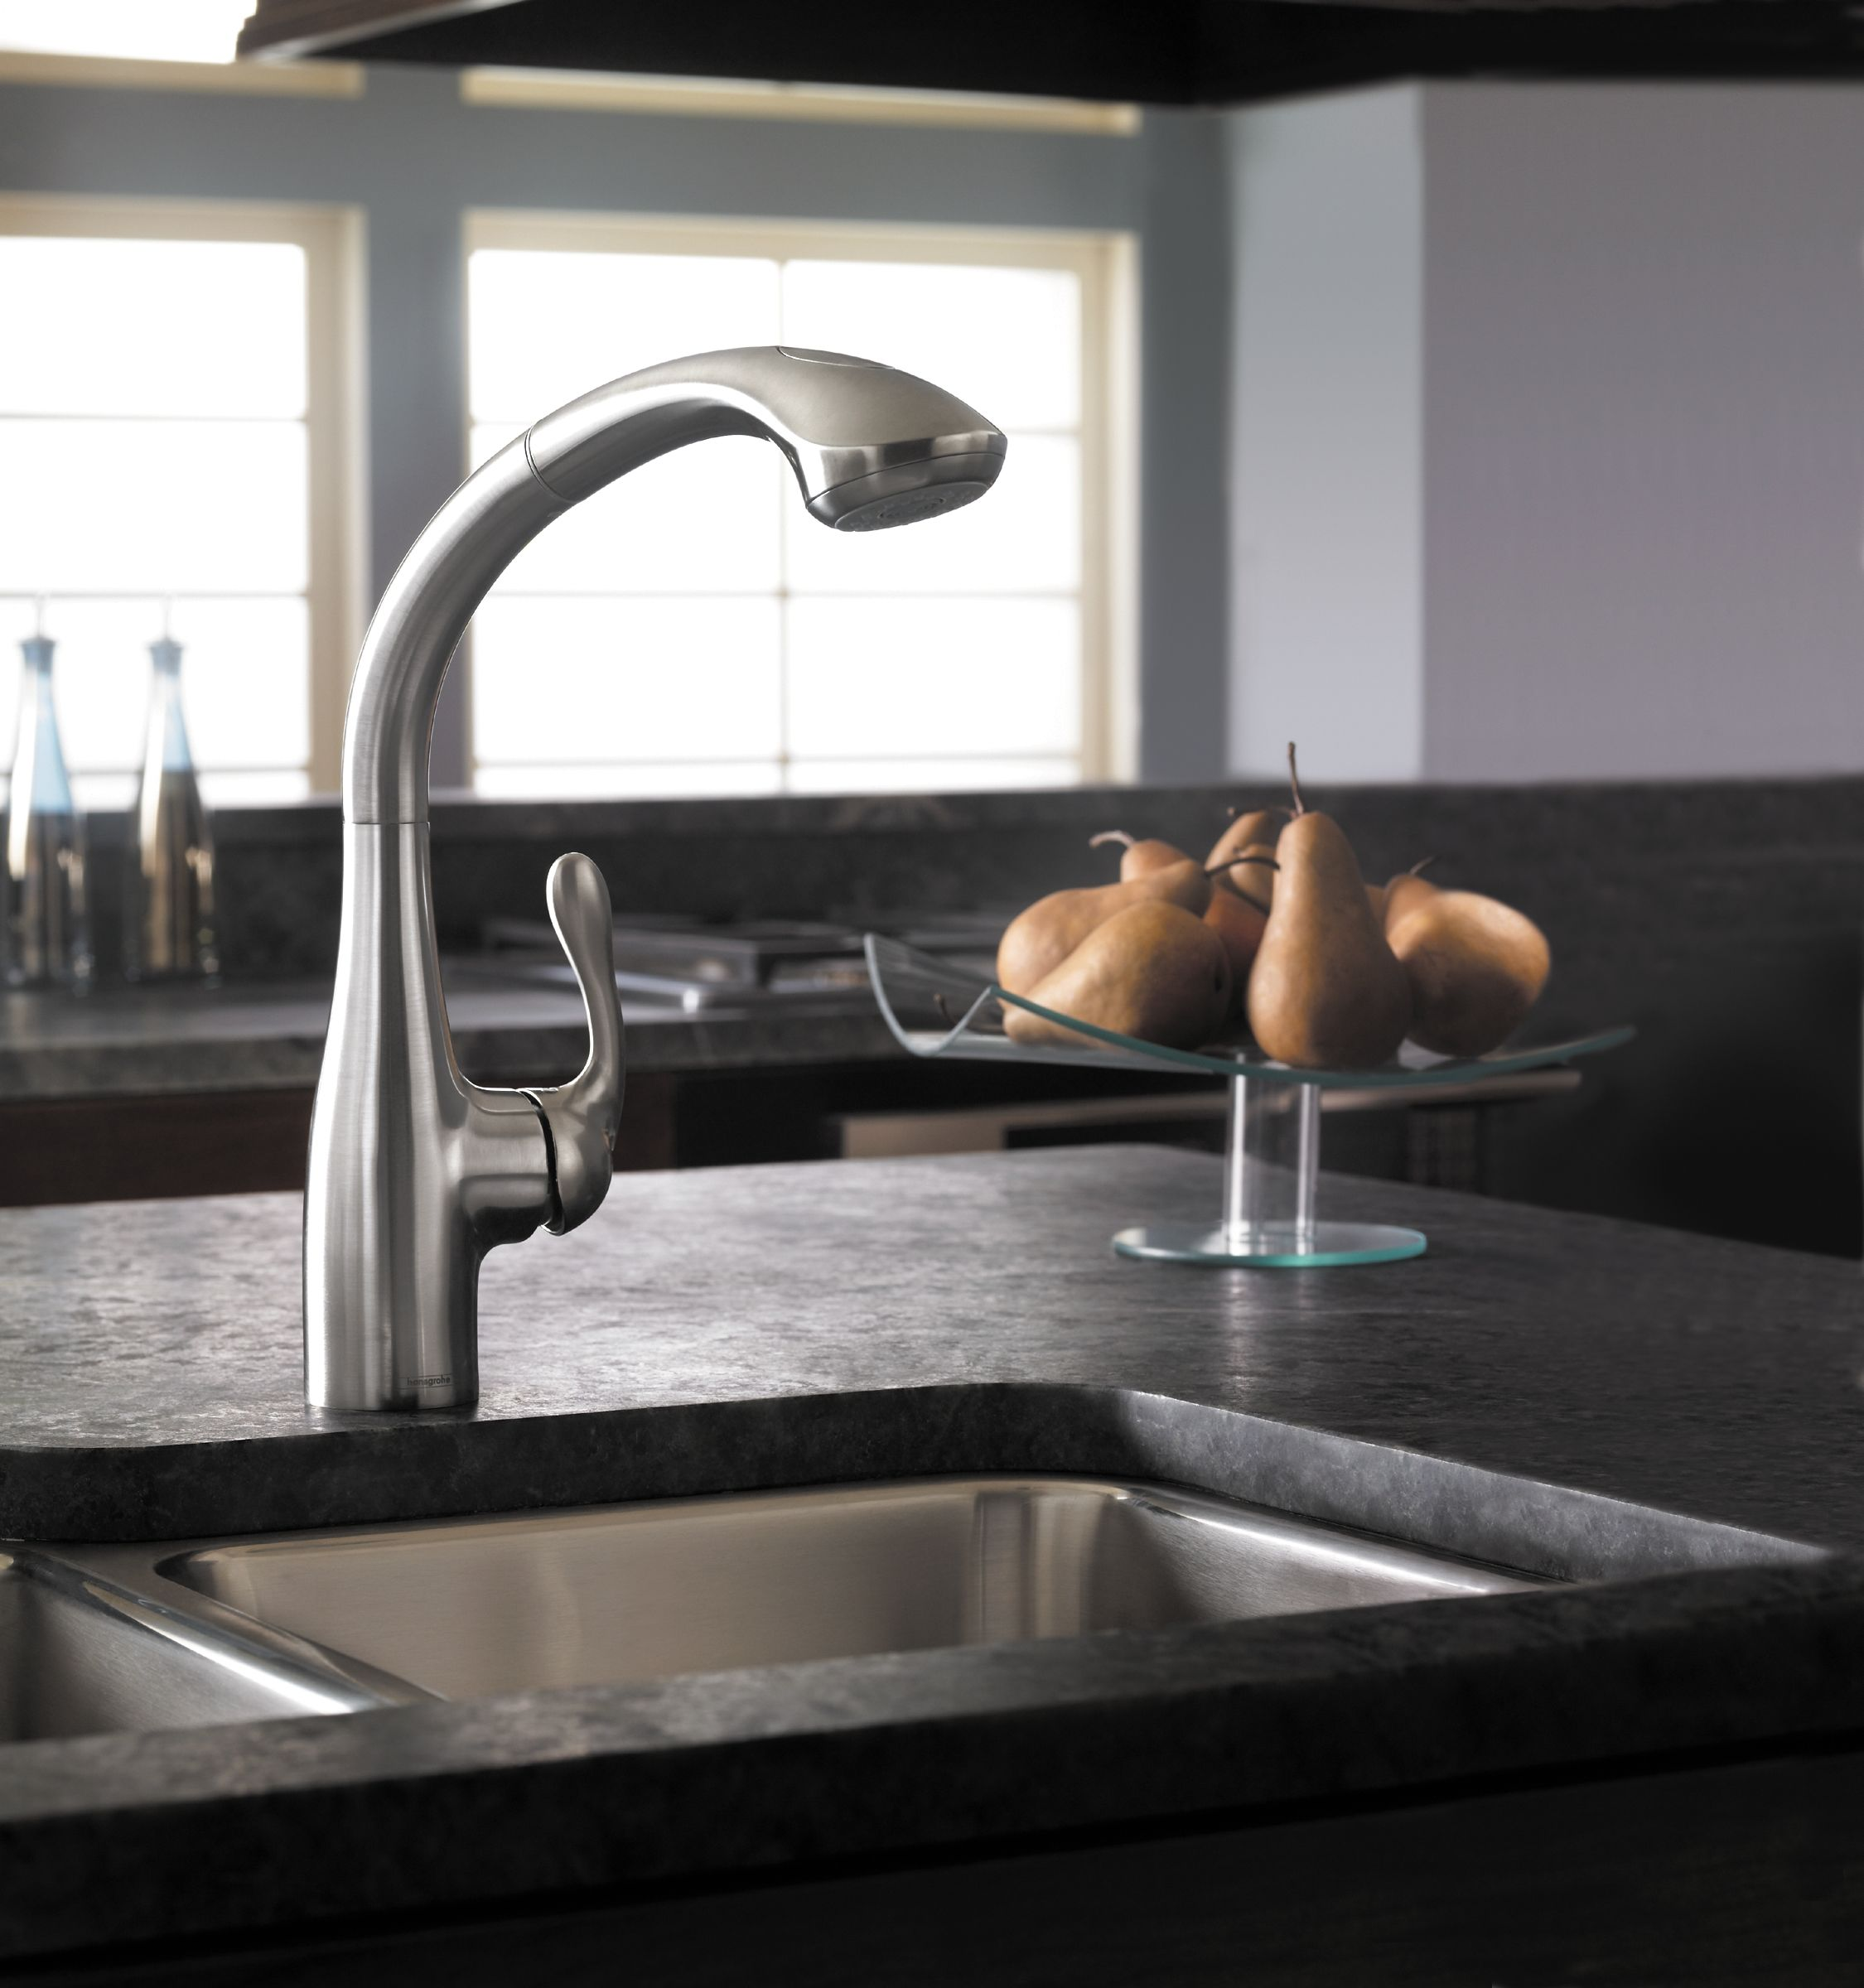 ideas review cento faucet hansgrohe for talis beautiful costco with e bathroom reviews c allegro decorating faucets kitchen interior m